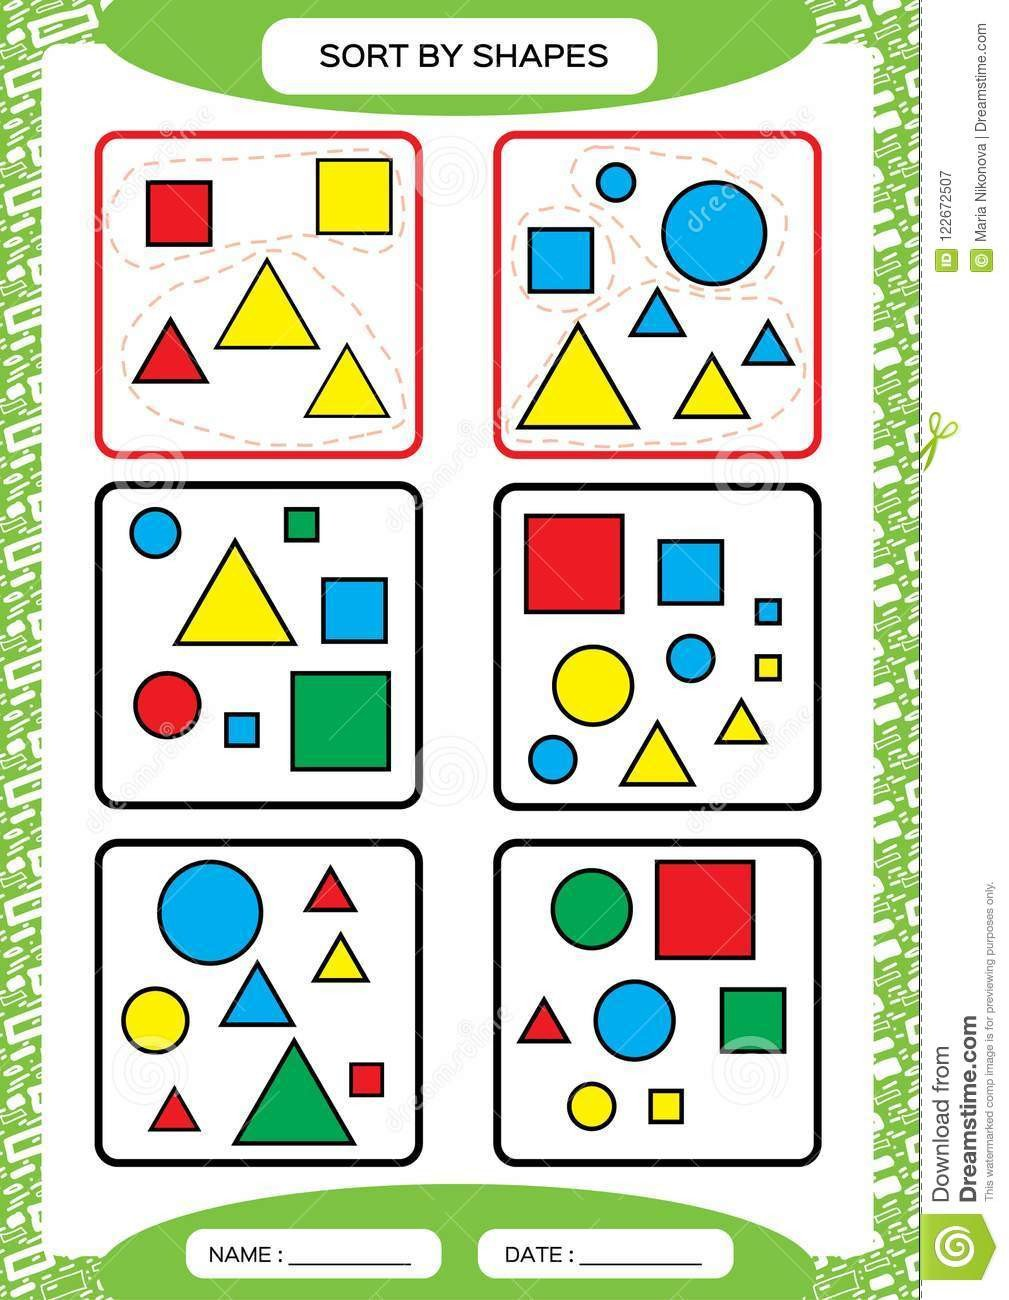 Sorting Shapes Worksheets sort by Shapes sorting Game Group by Shapes Square